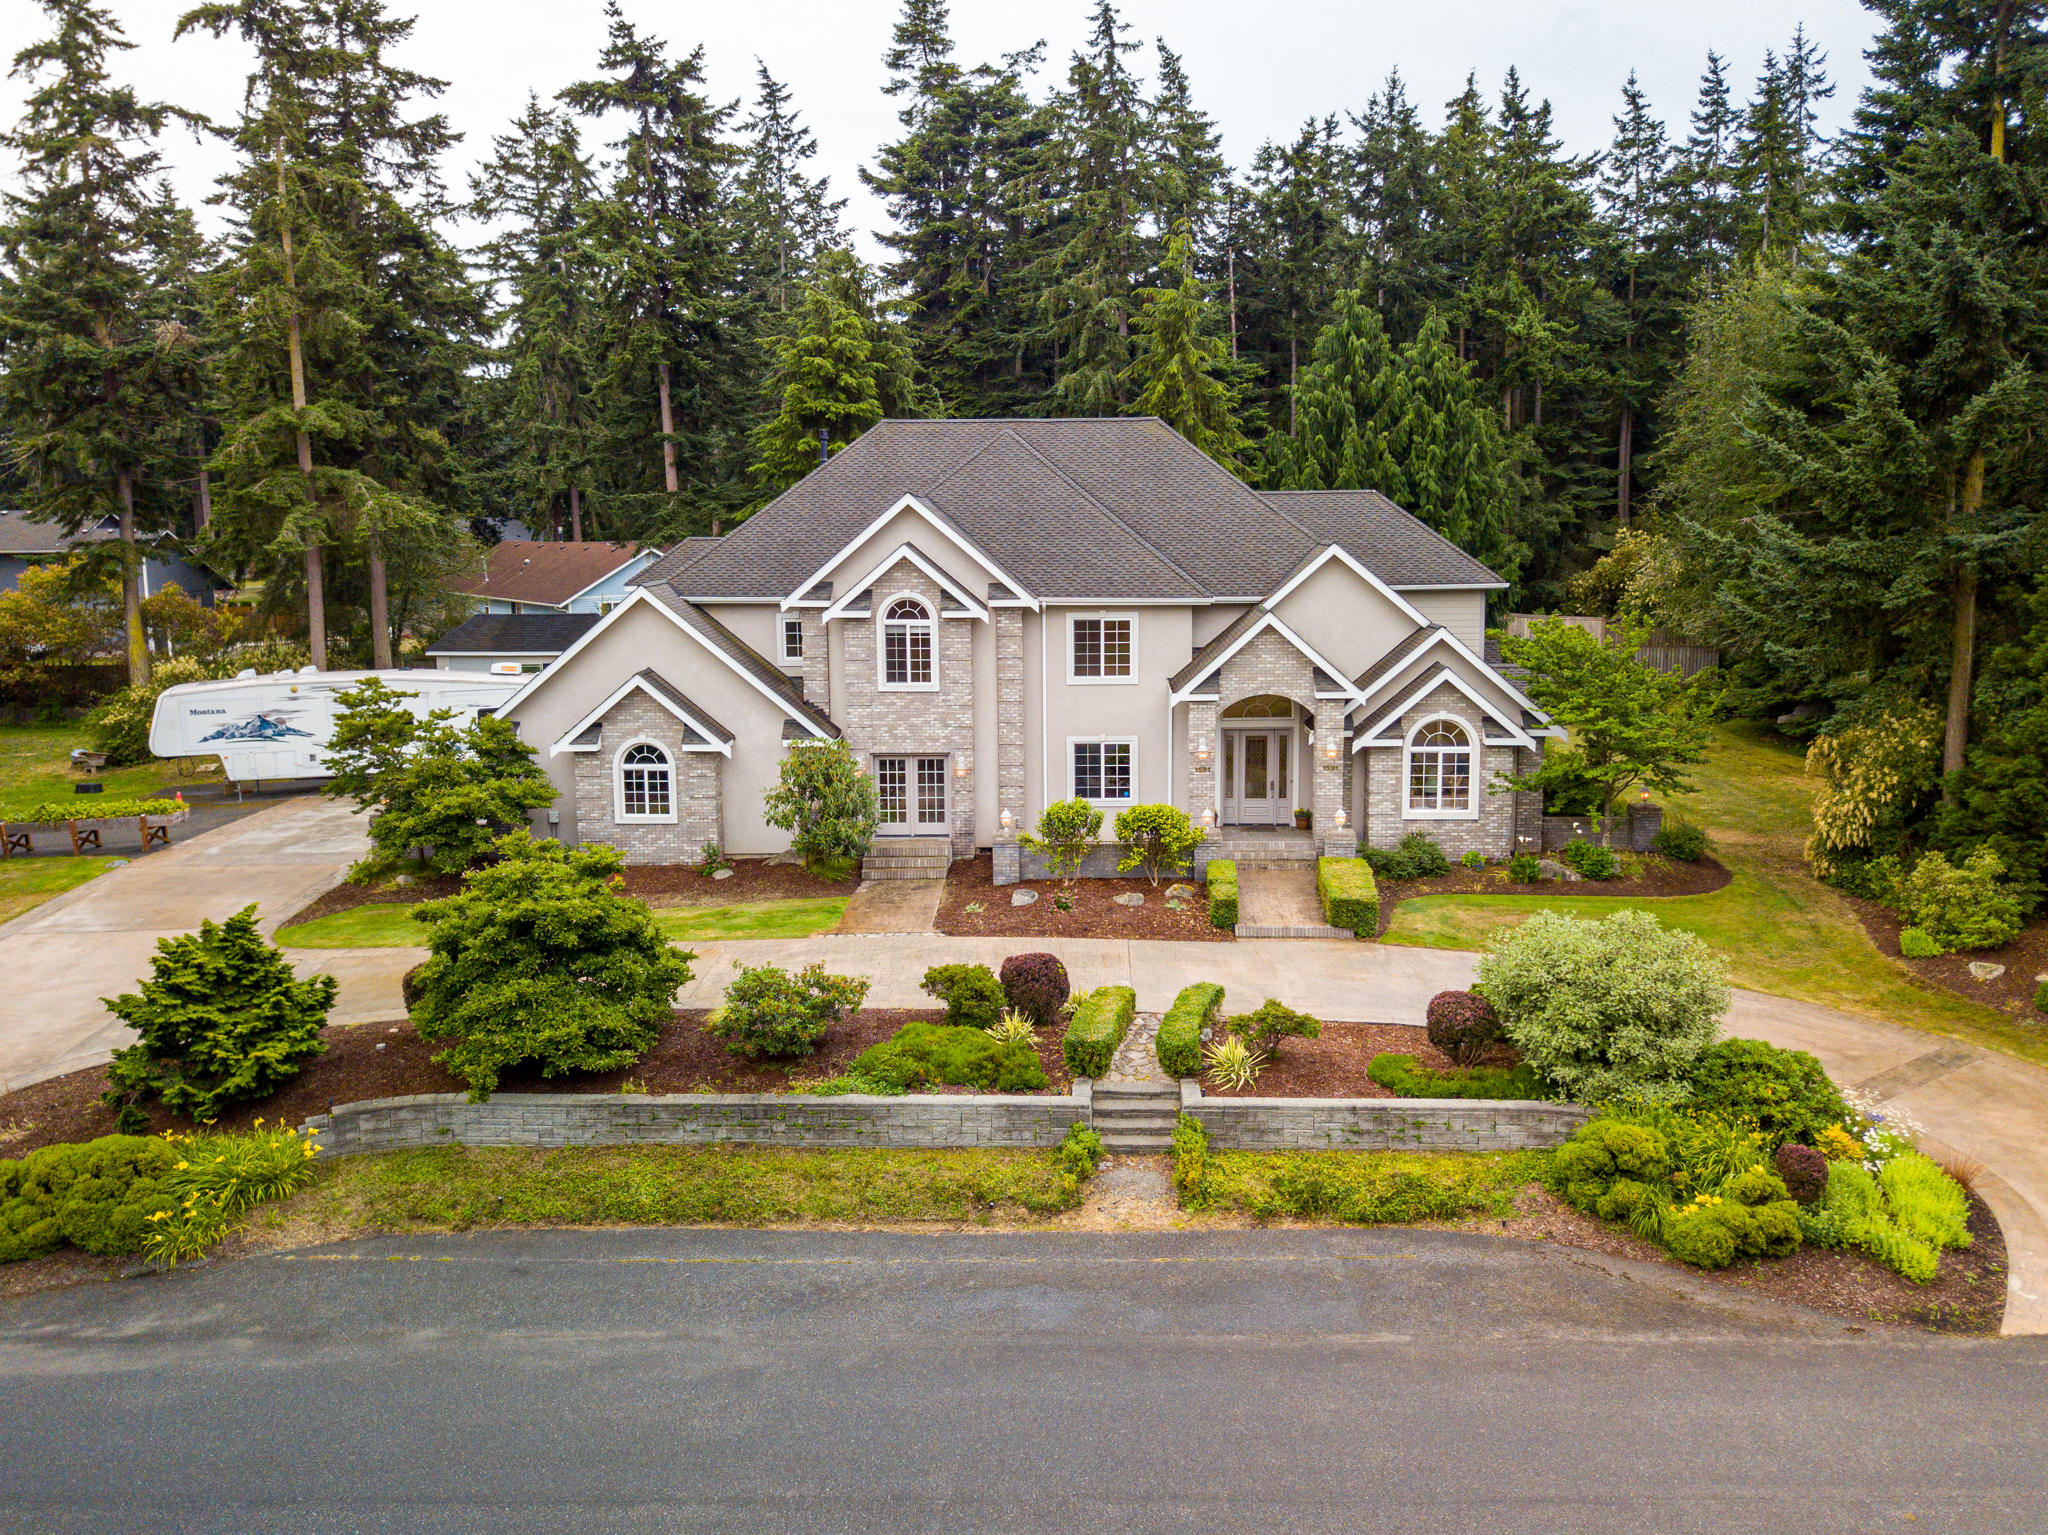 1591 Wedgewood Lane - Oak Harbor, WA 98277